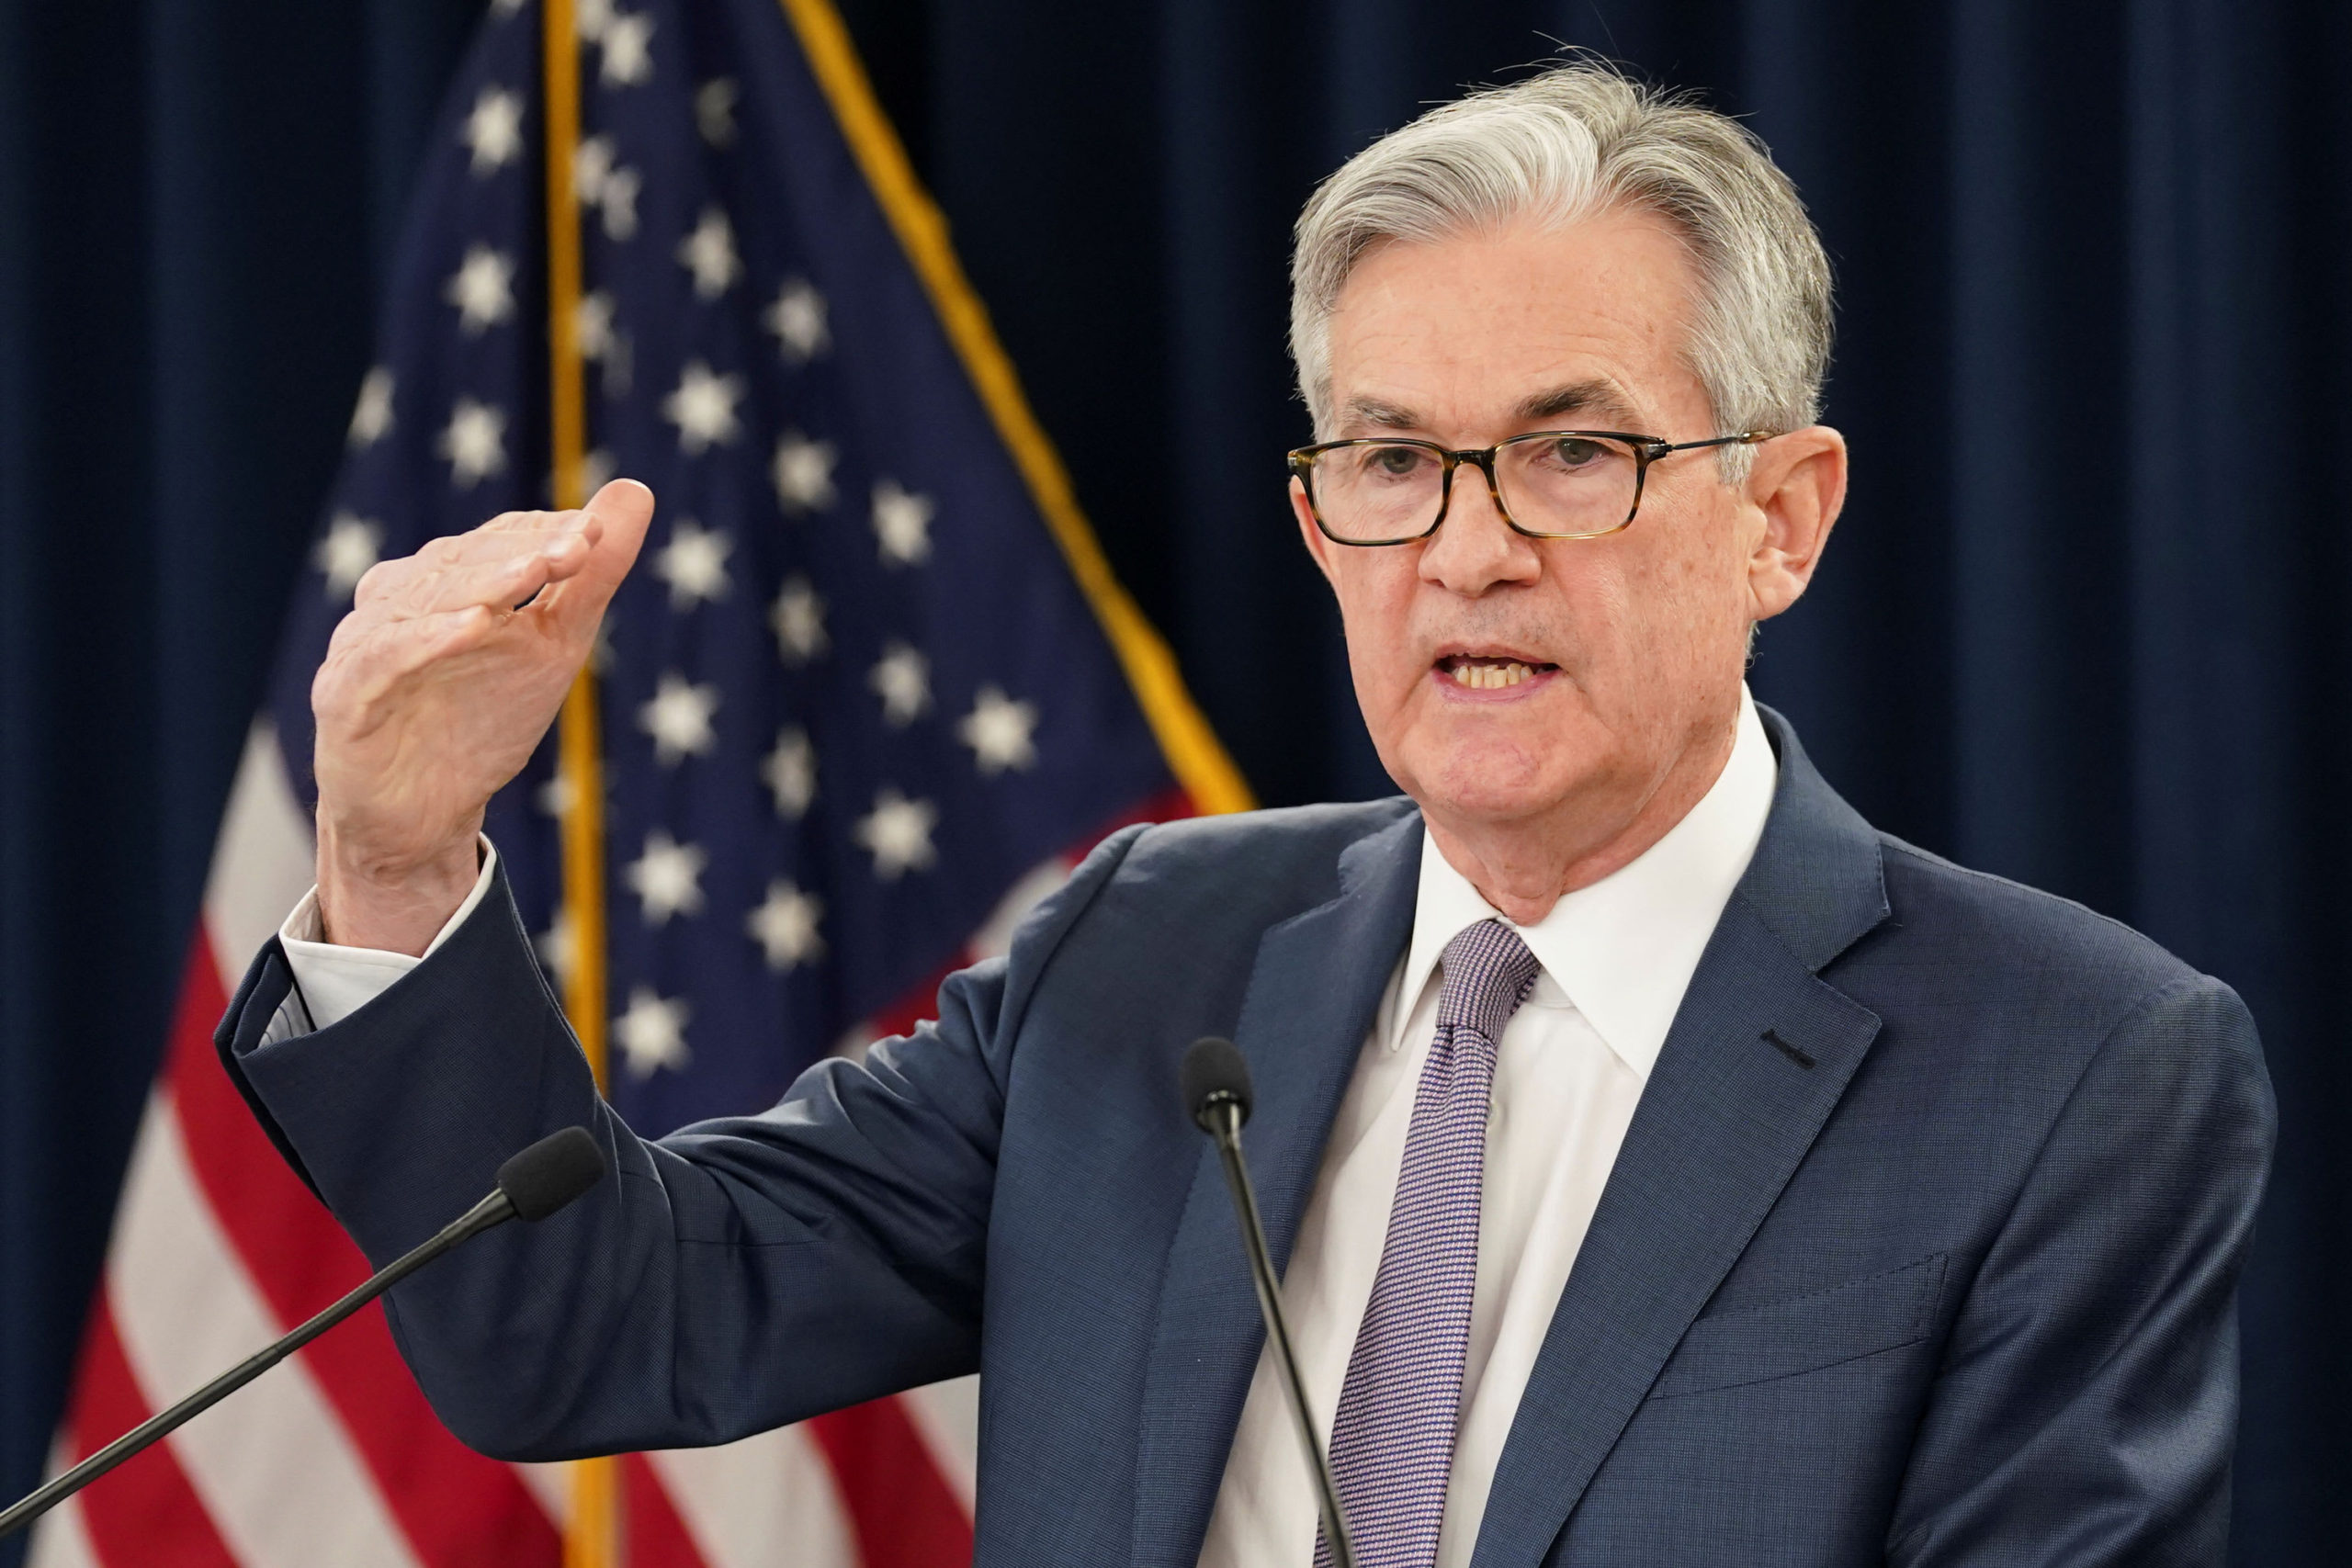 Fed sees interest rates staying near zero through 2022, GDP bouncing to 5% next year